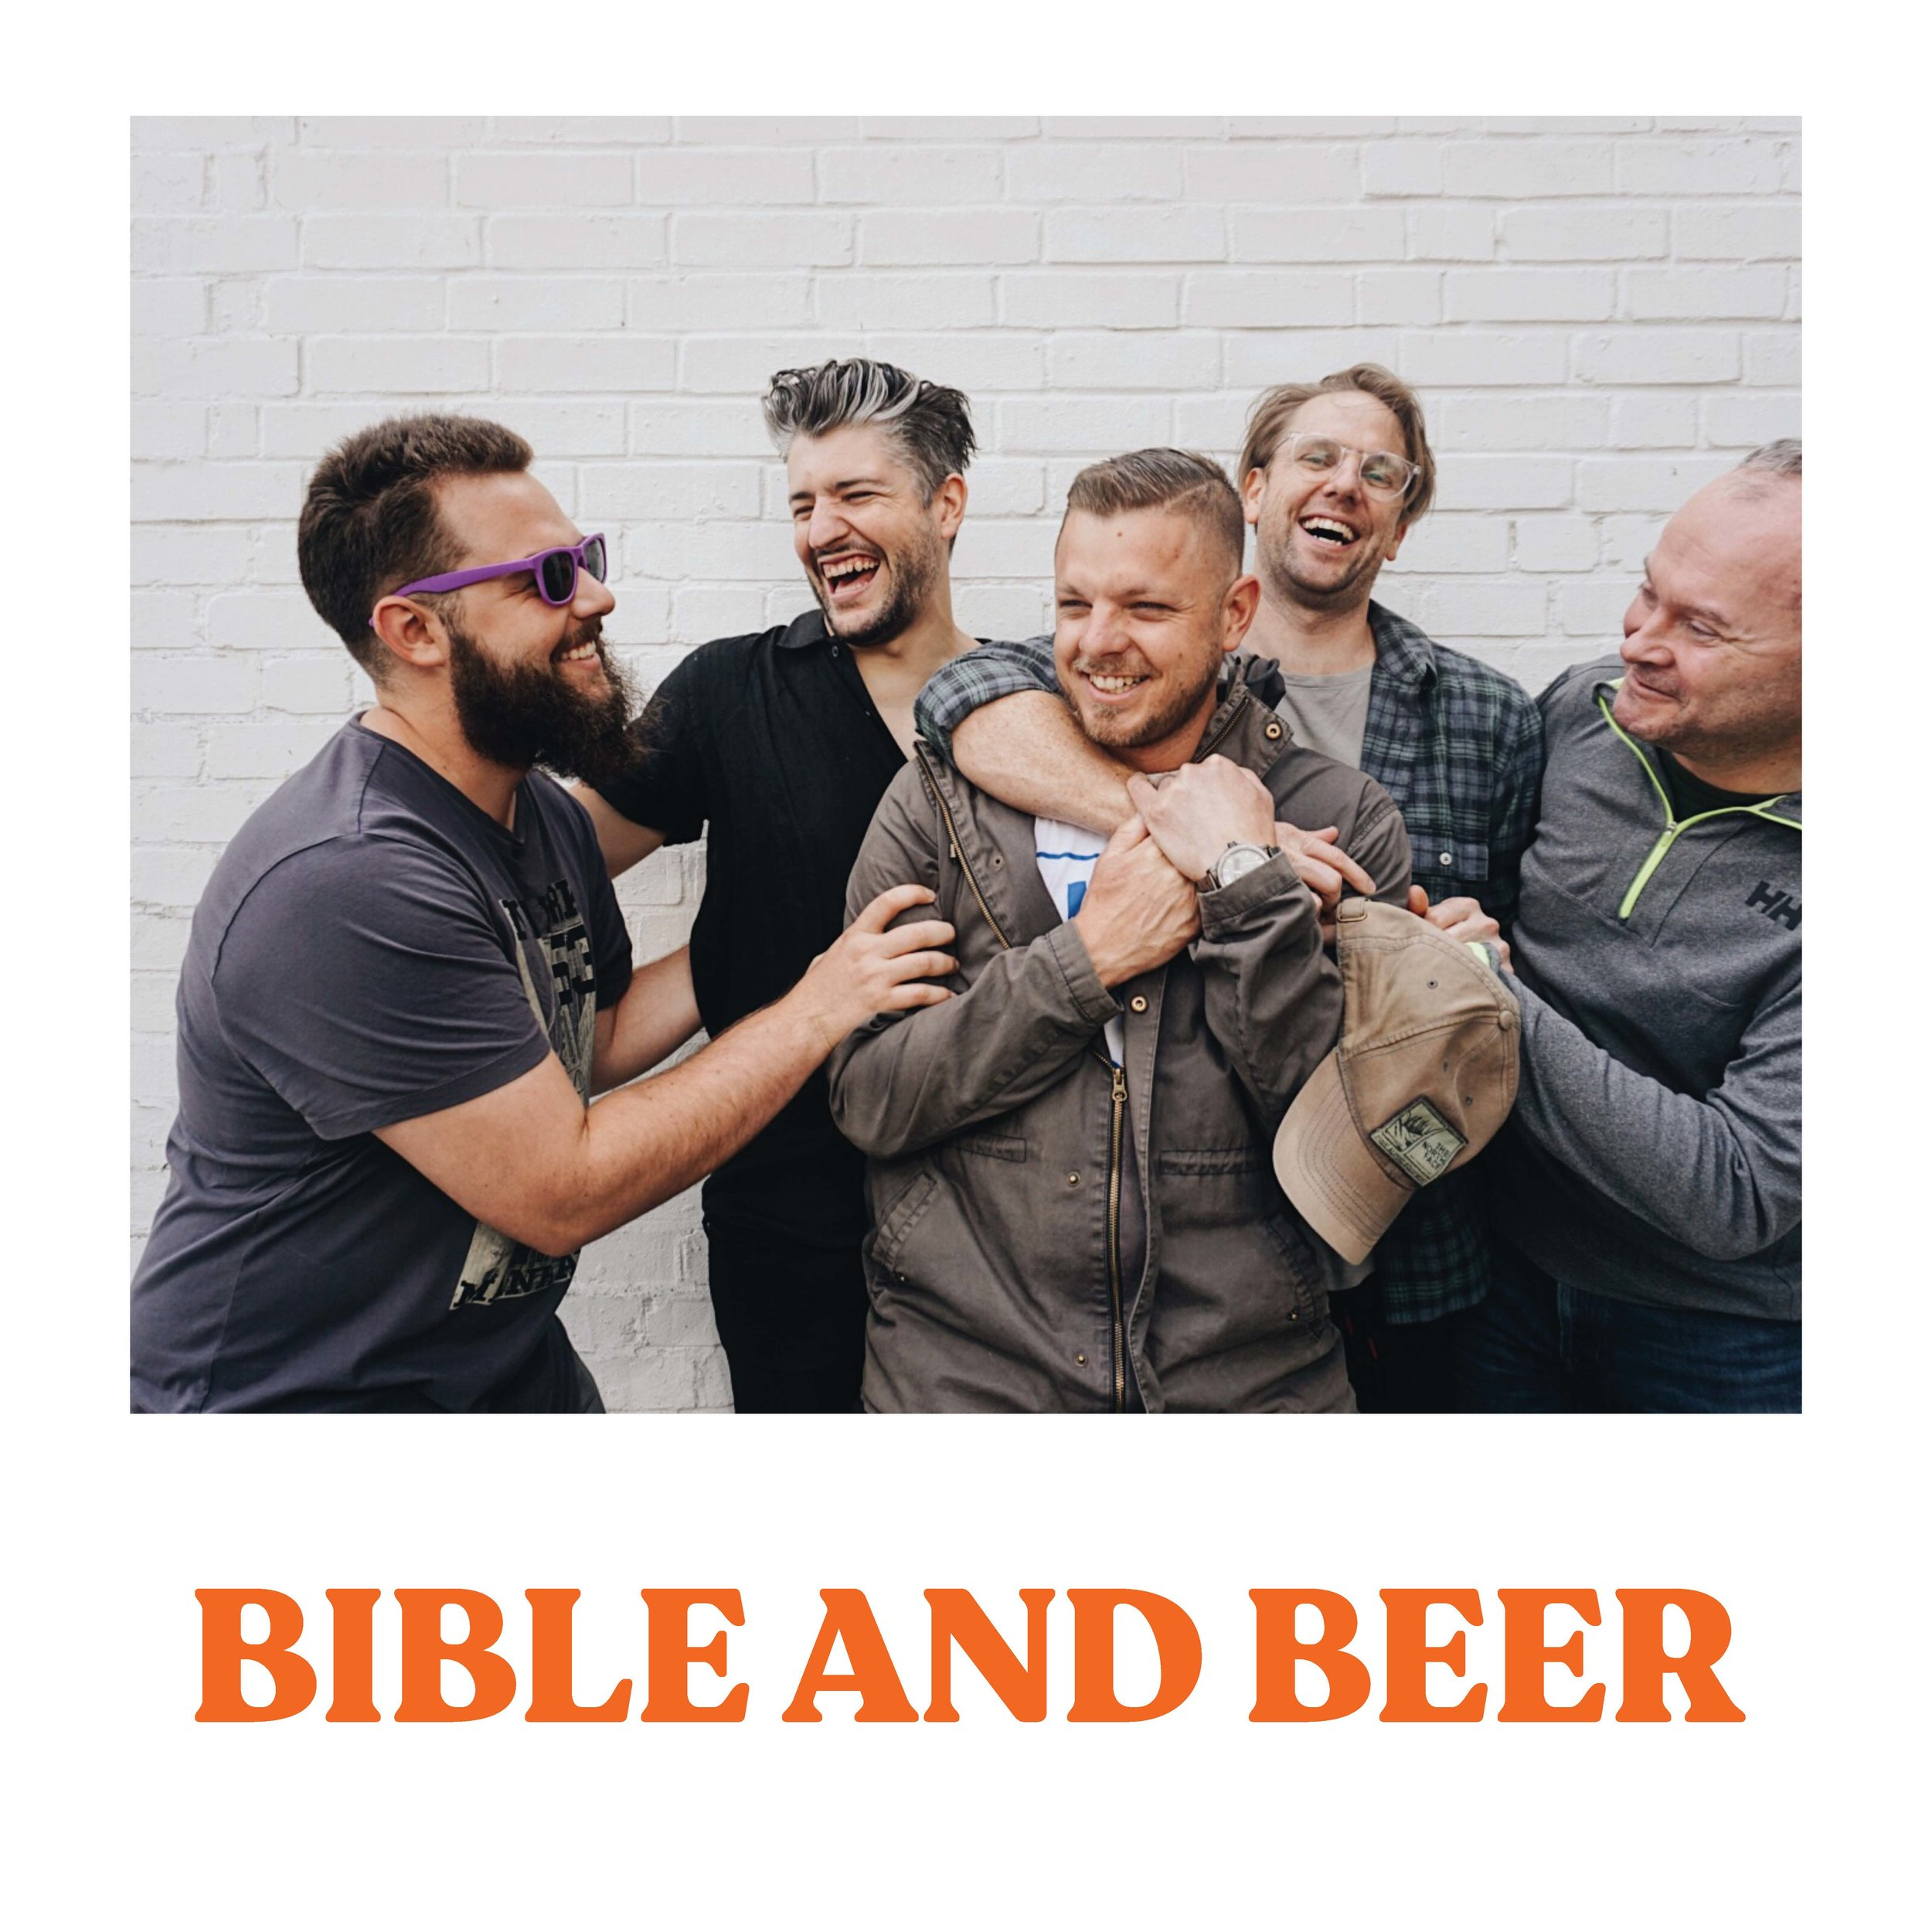 BIBLE AND BEER    Fortnightly Tuesday Nights 7:30 - 9:30pm Parsons Green SW6   Phil Hubbard and Ash Horton A community of men building each other in faith whilst enjoying a cold one! Doesn't get much better!  Contact: Phil  philmhubbard@gmail.com